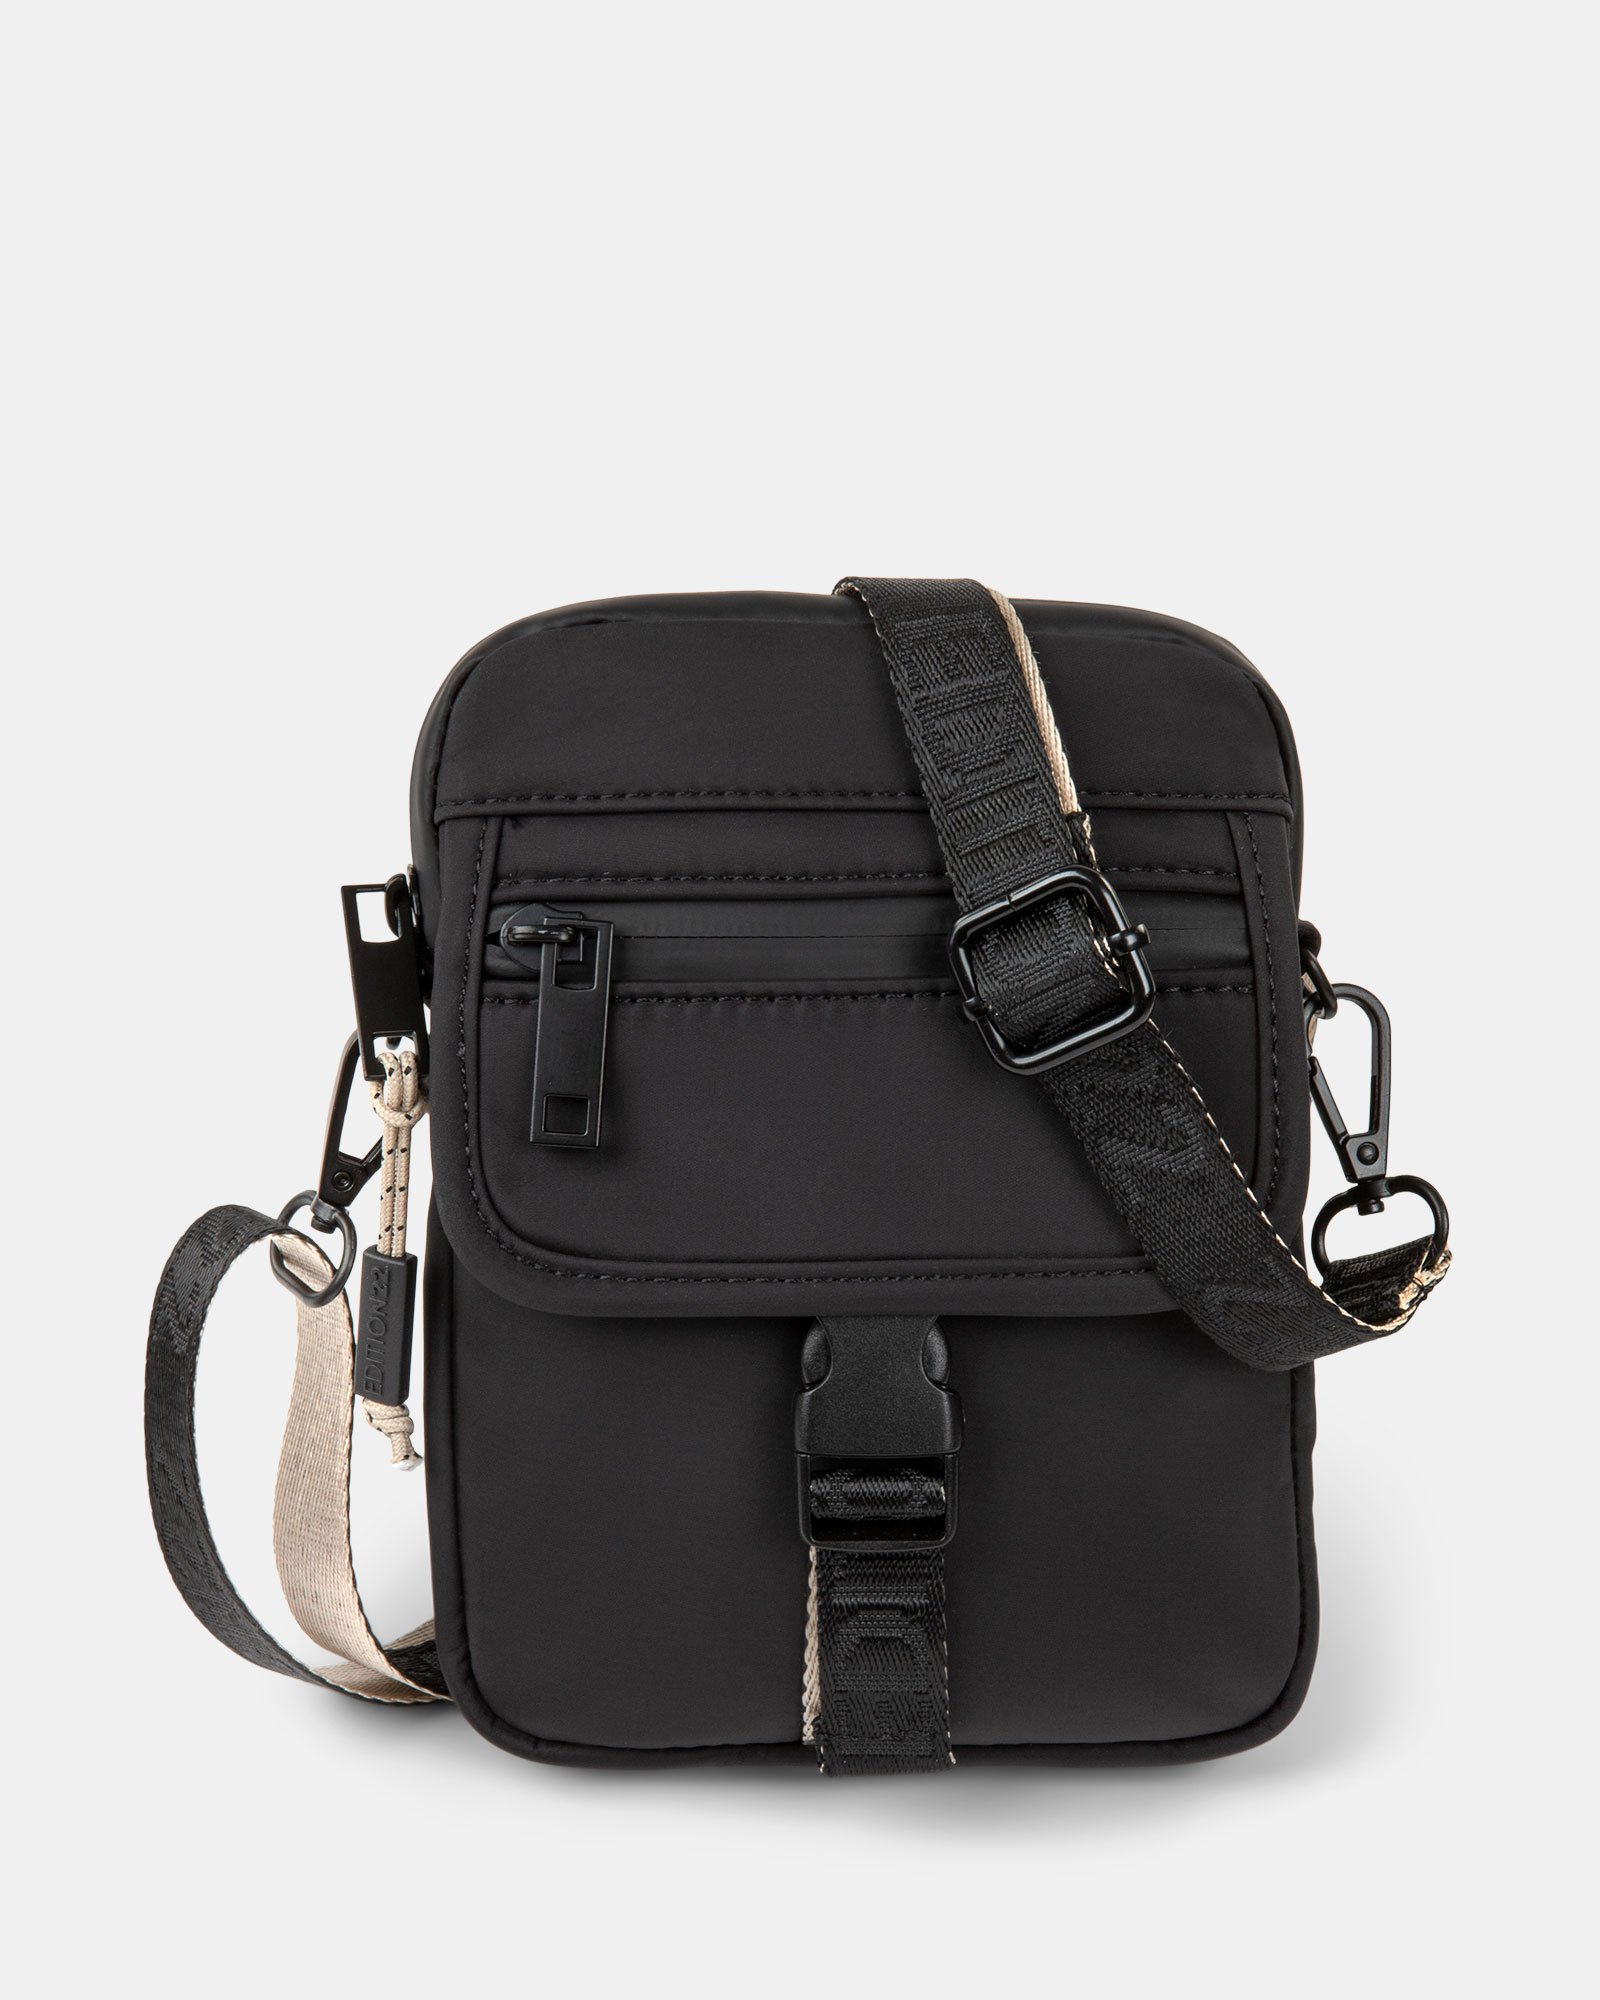 BUGATTI X EDITION22 - Crossbody that's both slim and functional, perfect for your small essentials items - Black - Bugatti - Zoom